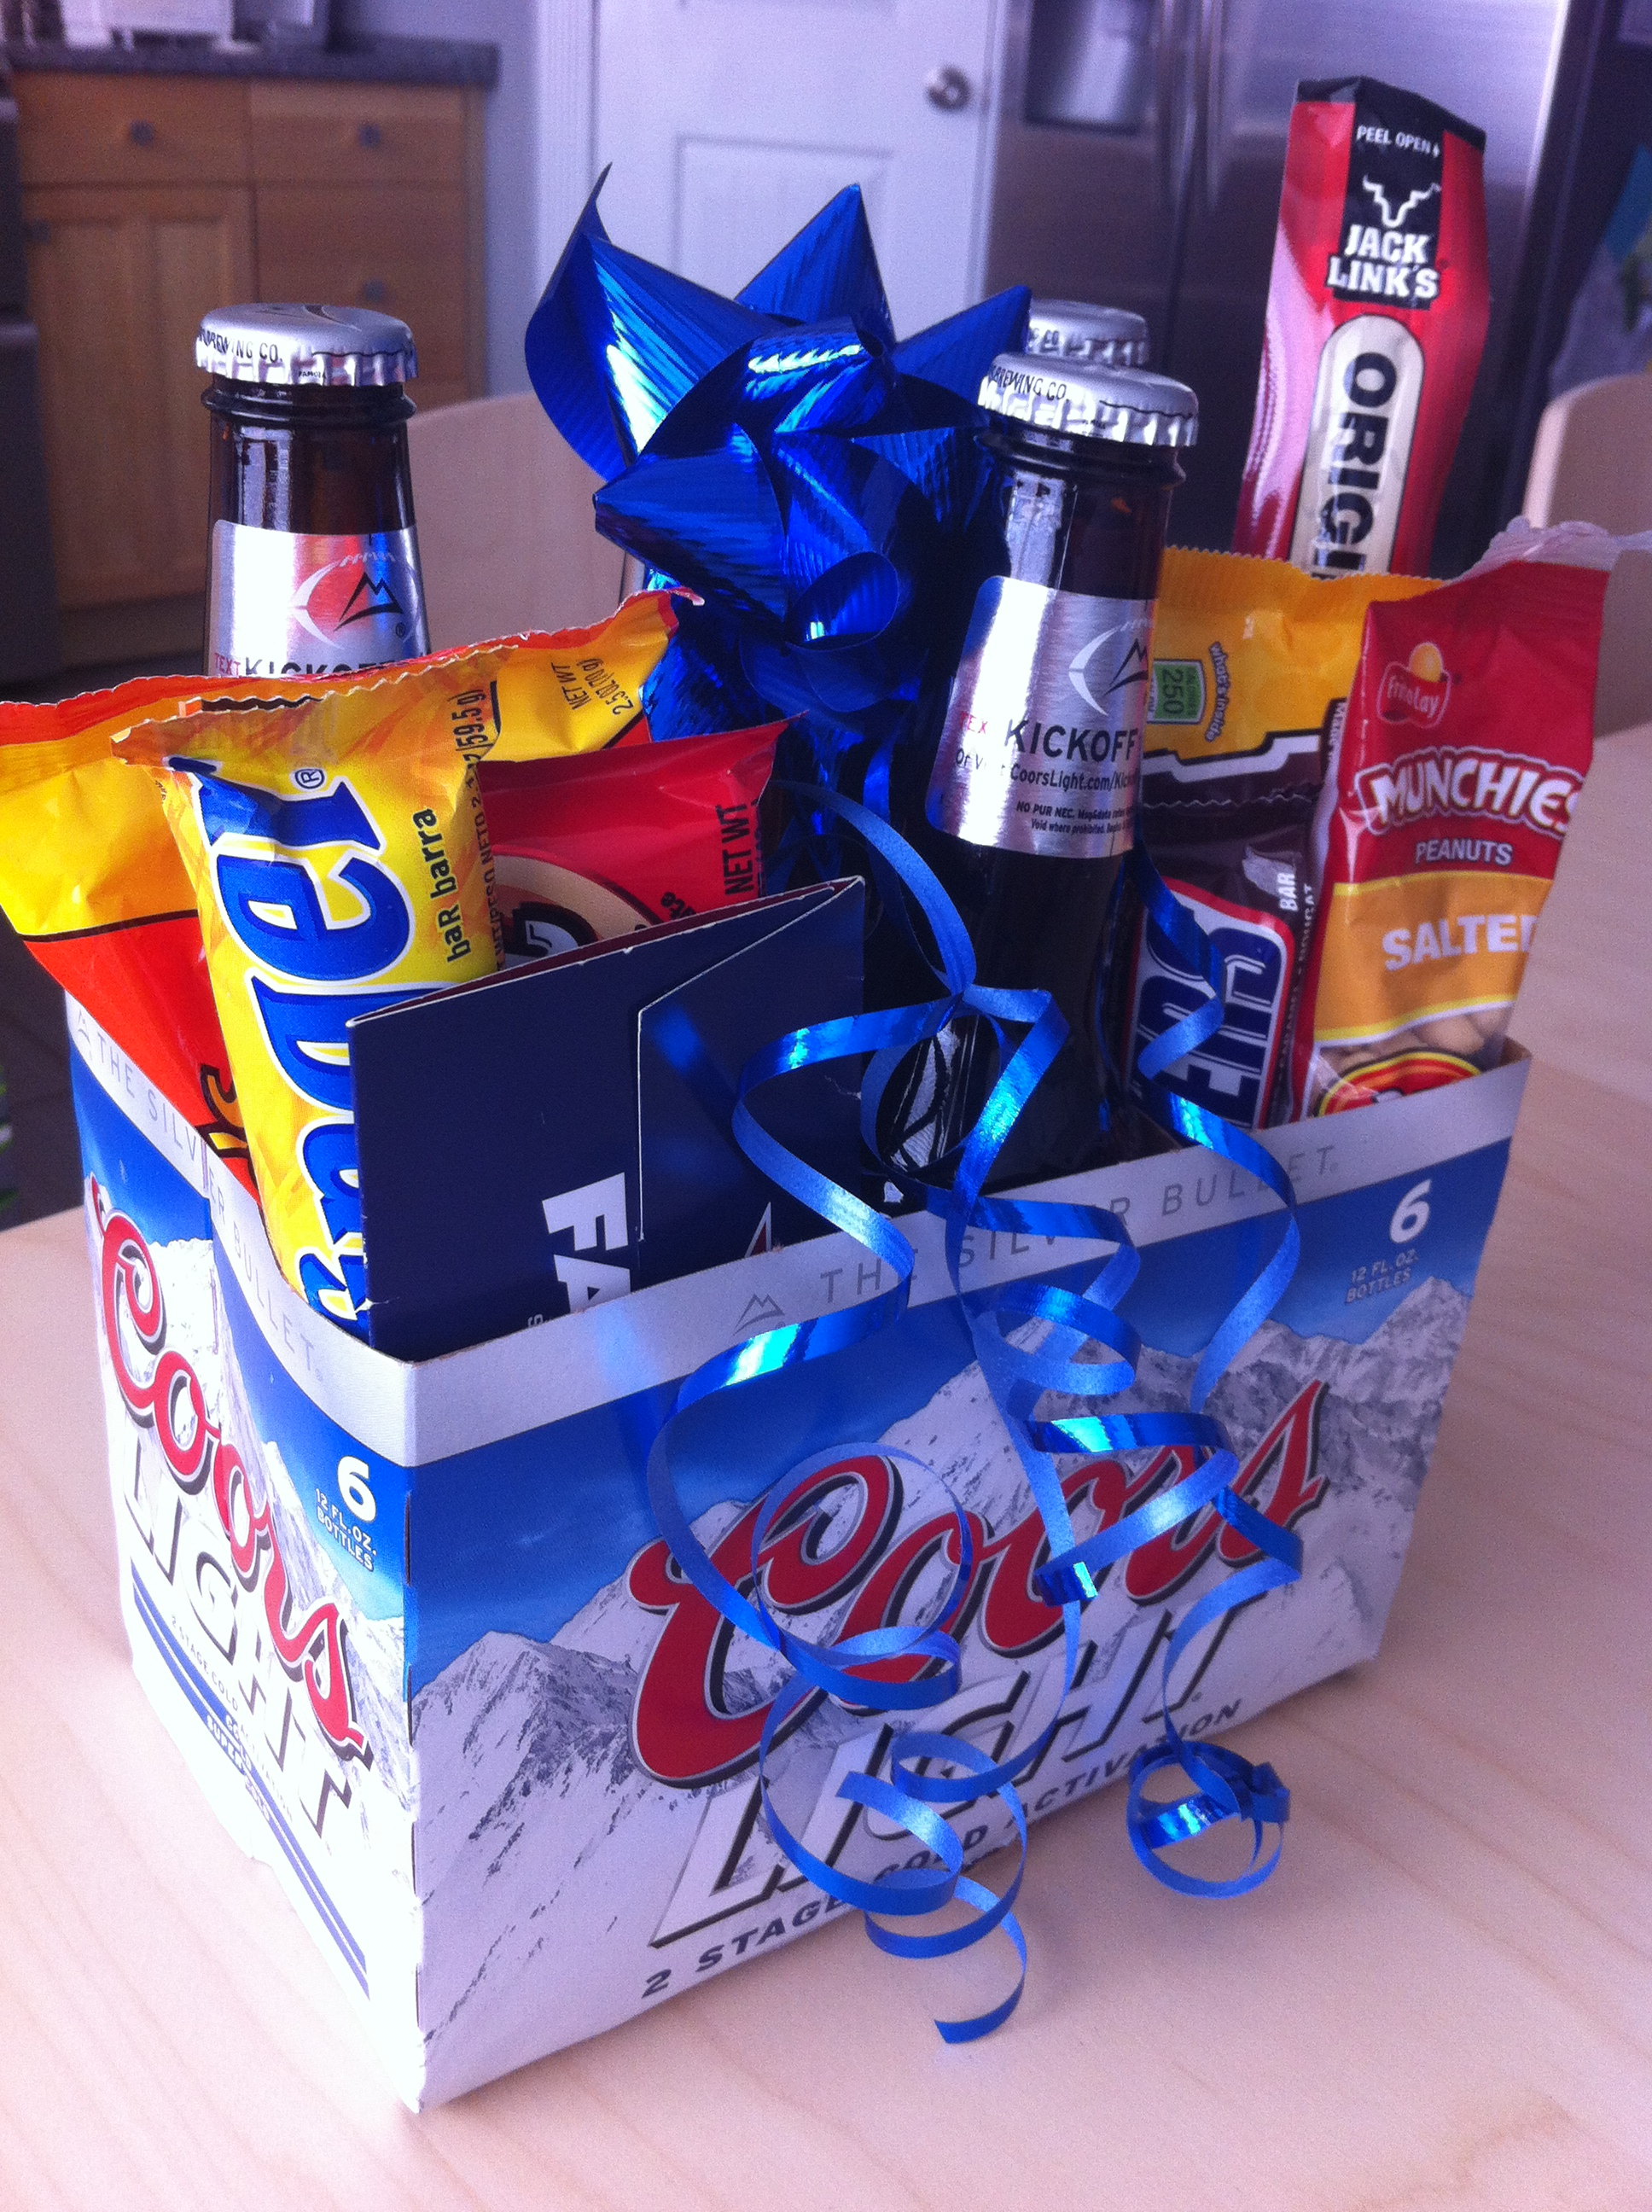 A great man gift for A gift for a guy